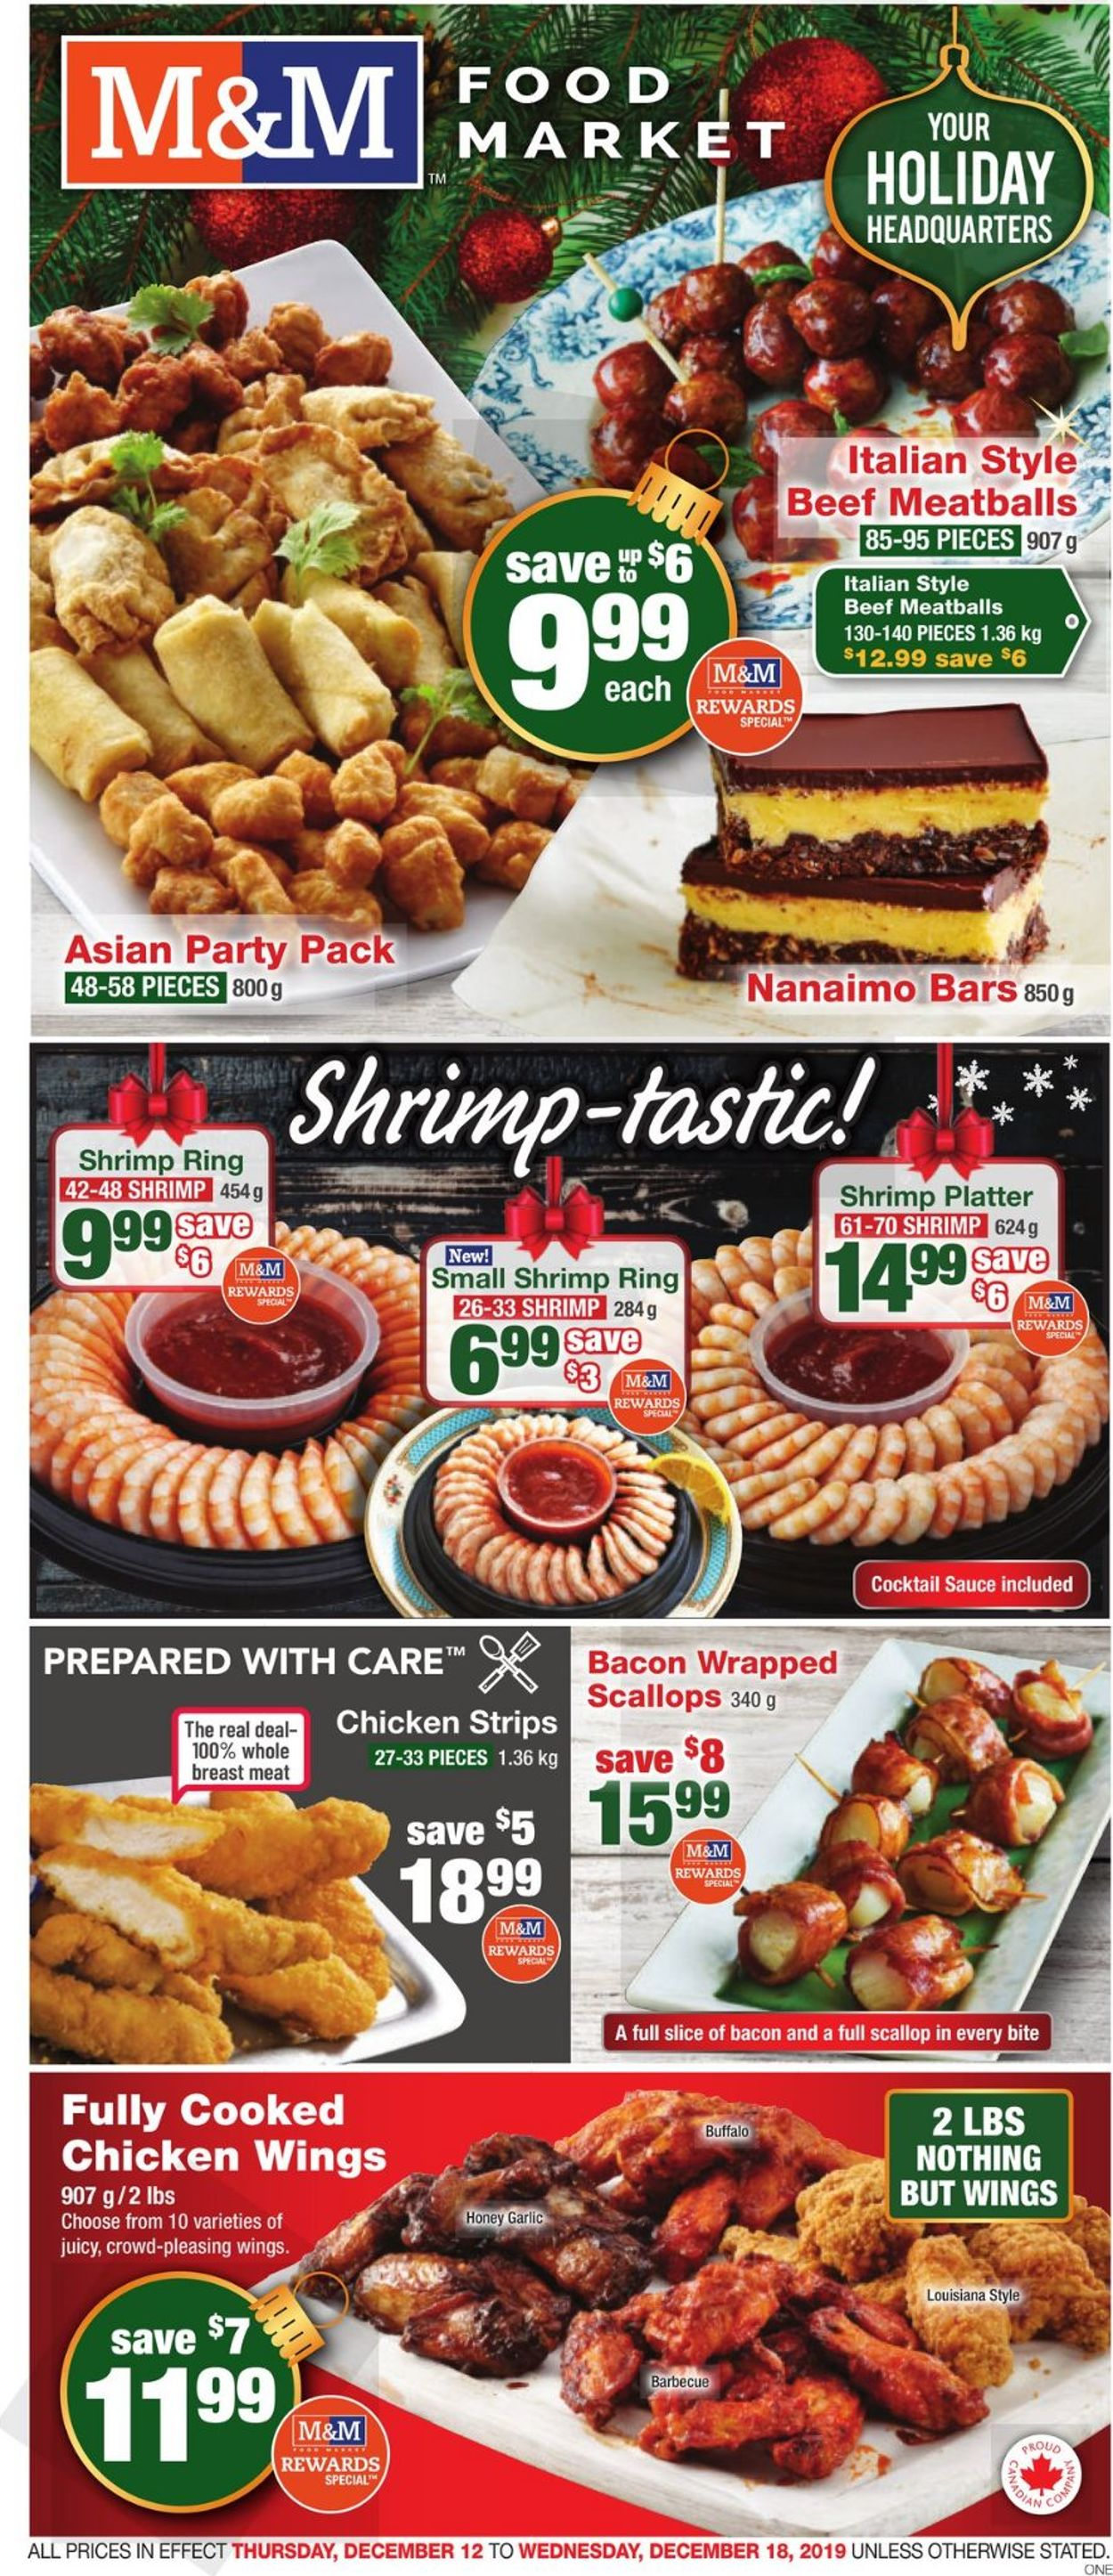 M&M Food Market - Holiday Flyer 2019 Flyer - 12/12-12/18/2019